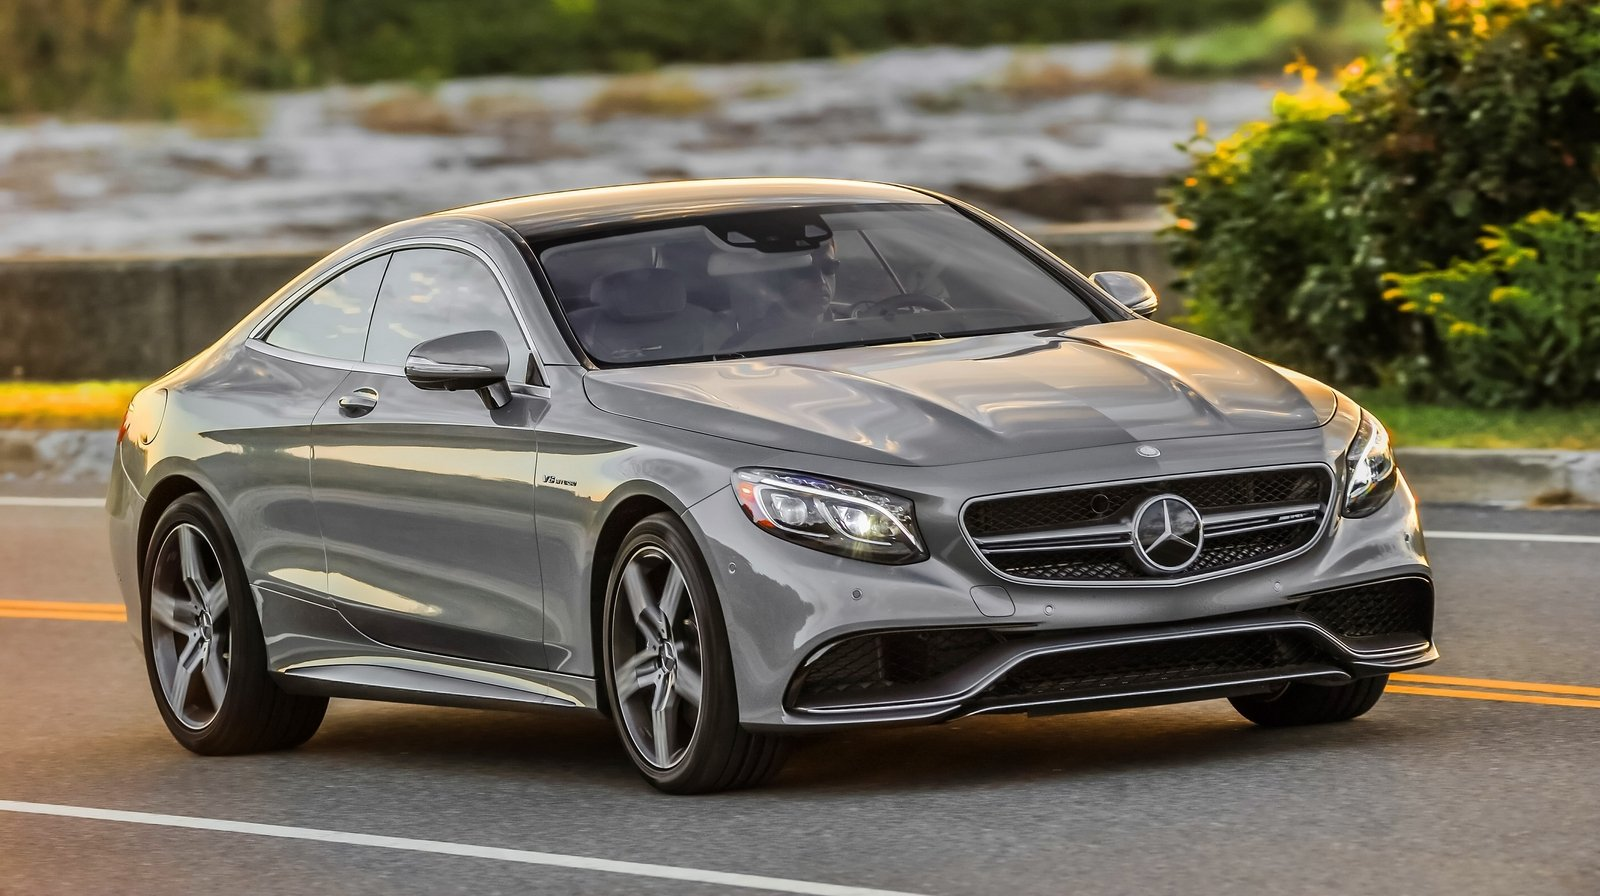 2015 mercedes s63 amg coupe edition 1 review top speed. Black Bedroom Furniture Sets. Home Design Ideas